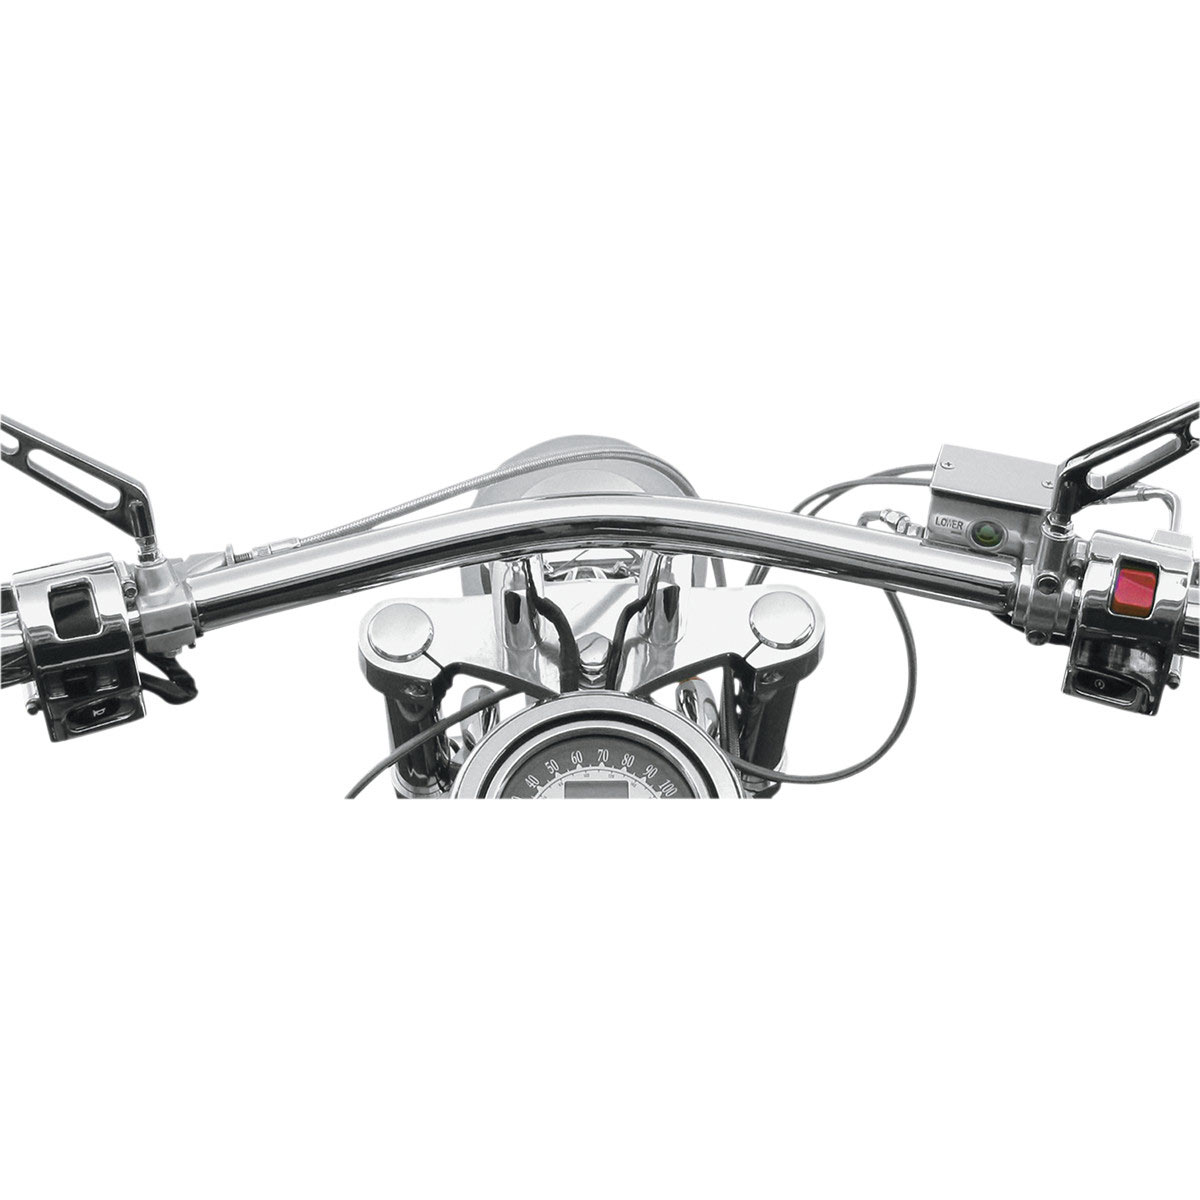 Baron Custom Radi Us Drag Bar For V Star Custom 99 09